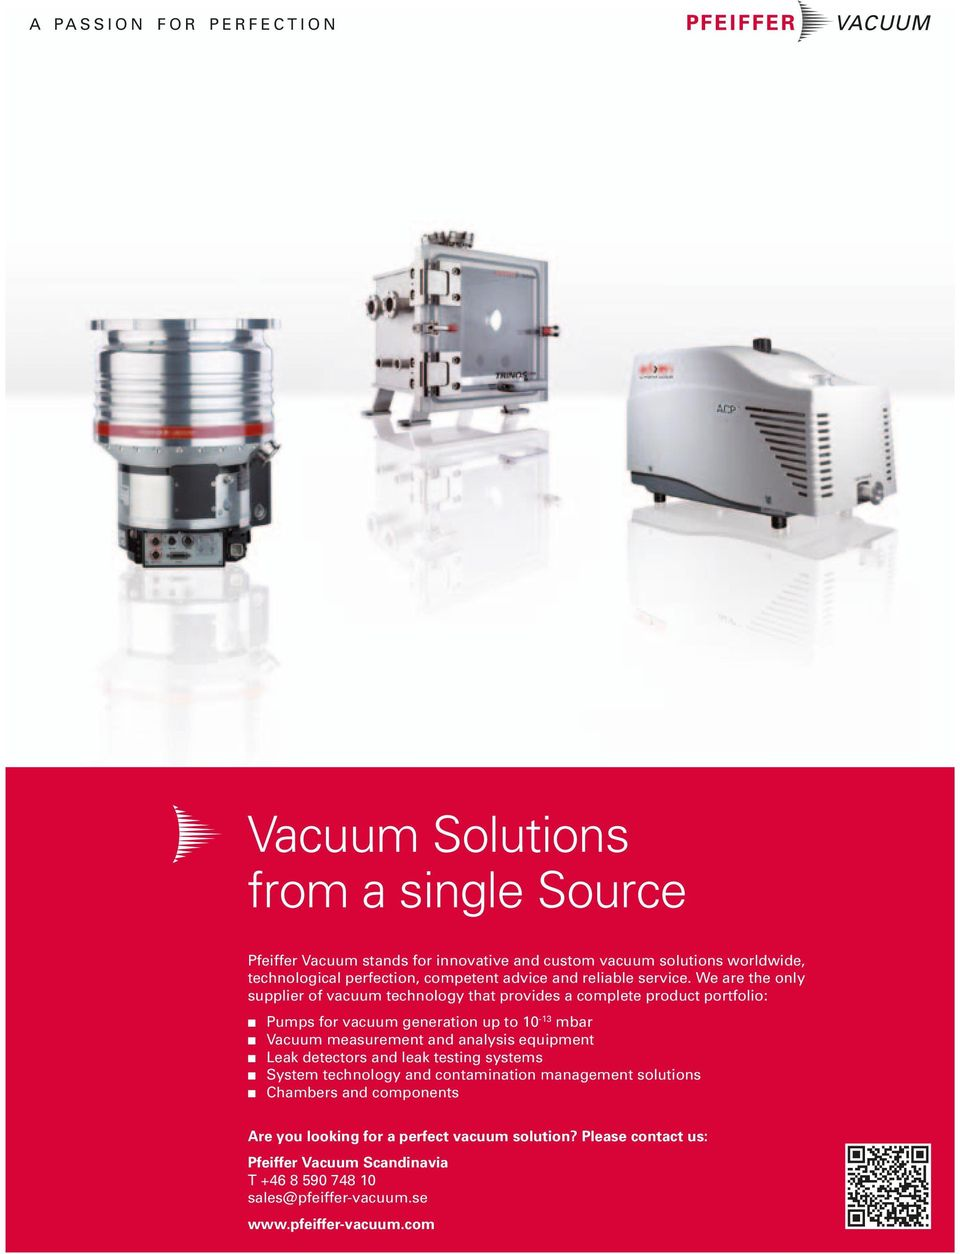 We are the only supplier of vacuum technology that provides a complete product portfolio: n Pumps for vacuum generation up to 10-13 mbar n Vacuum measurement and